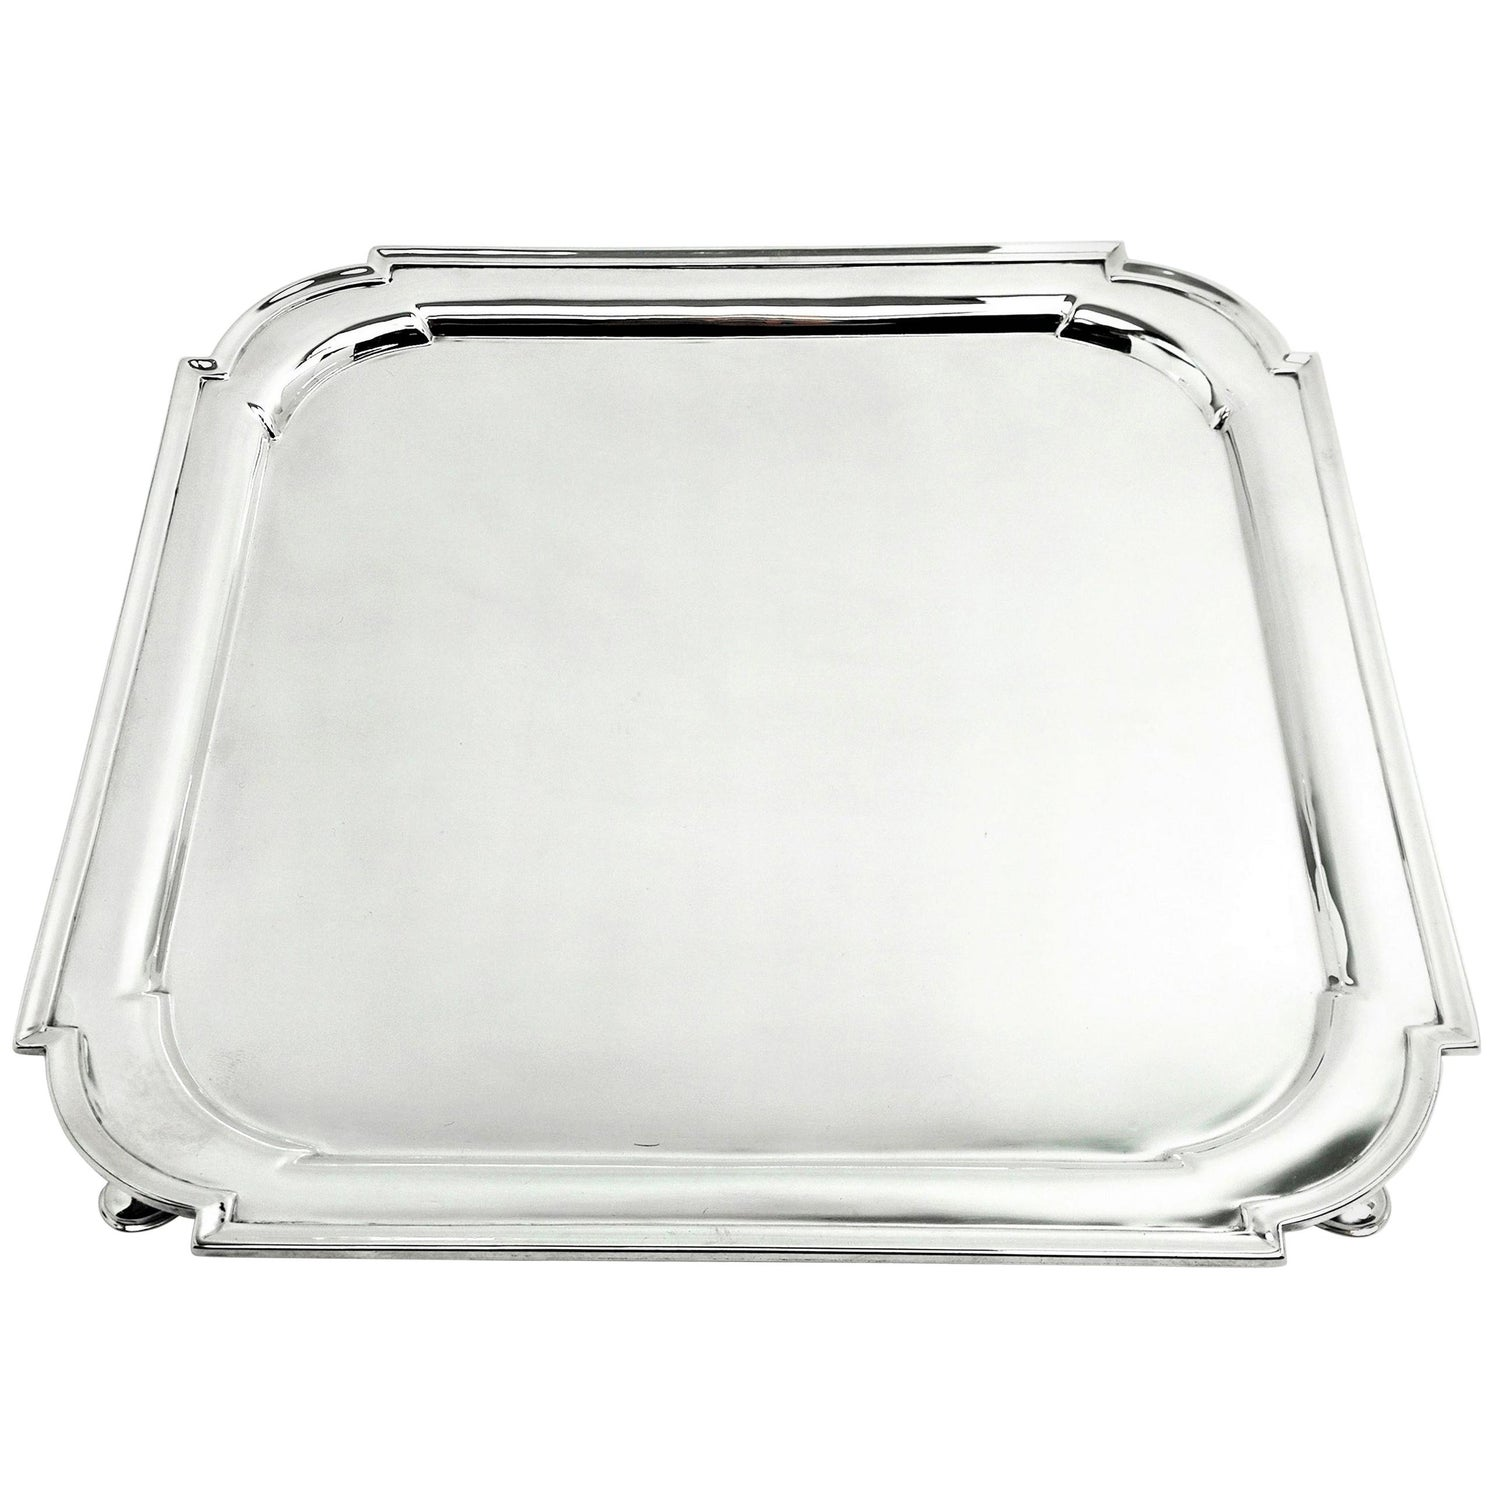 Antique Sterling Silver Salver 1903 Square Waiter Tray Platter